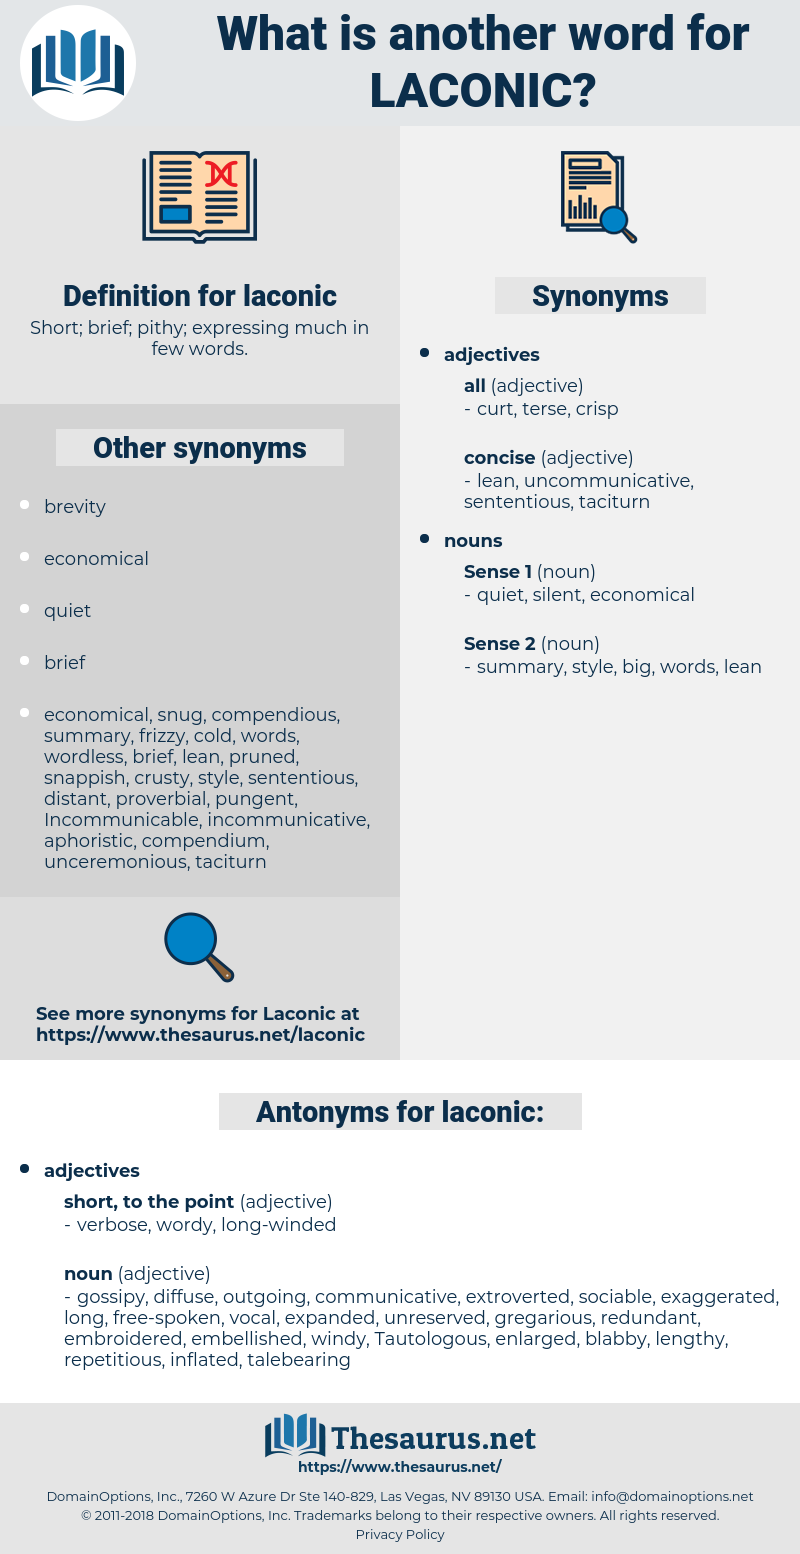 laconic, synonym laconic, another word for laconic, words like laconic, thesaurus laconic